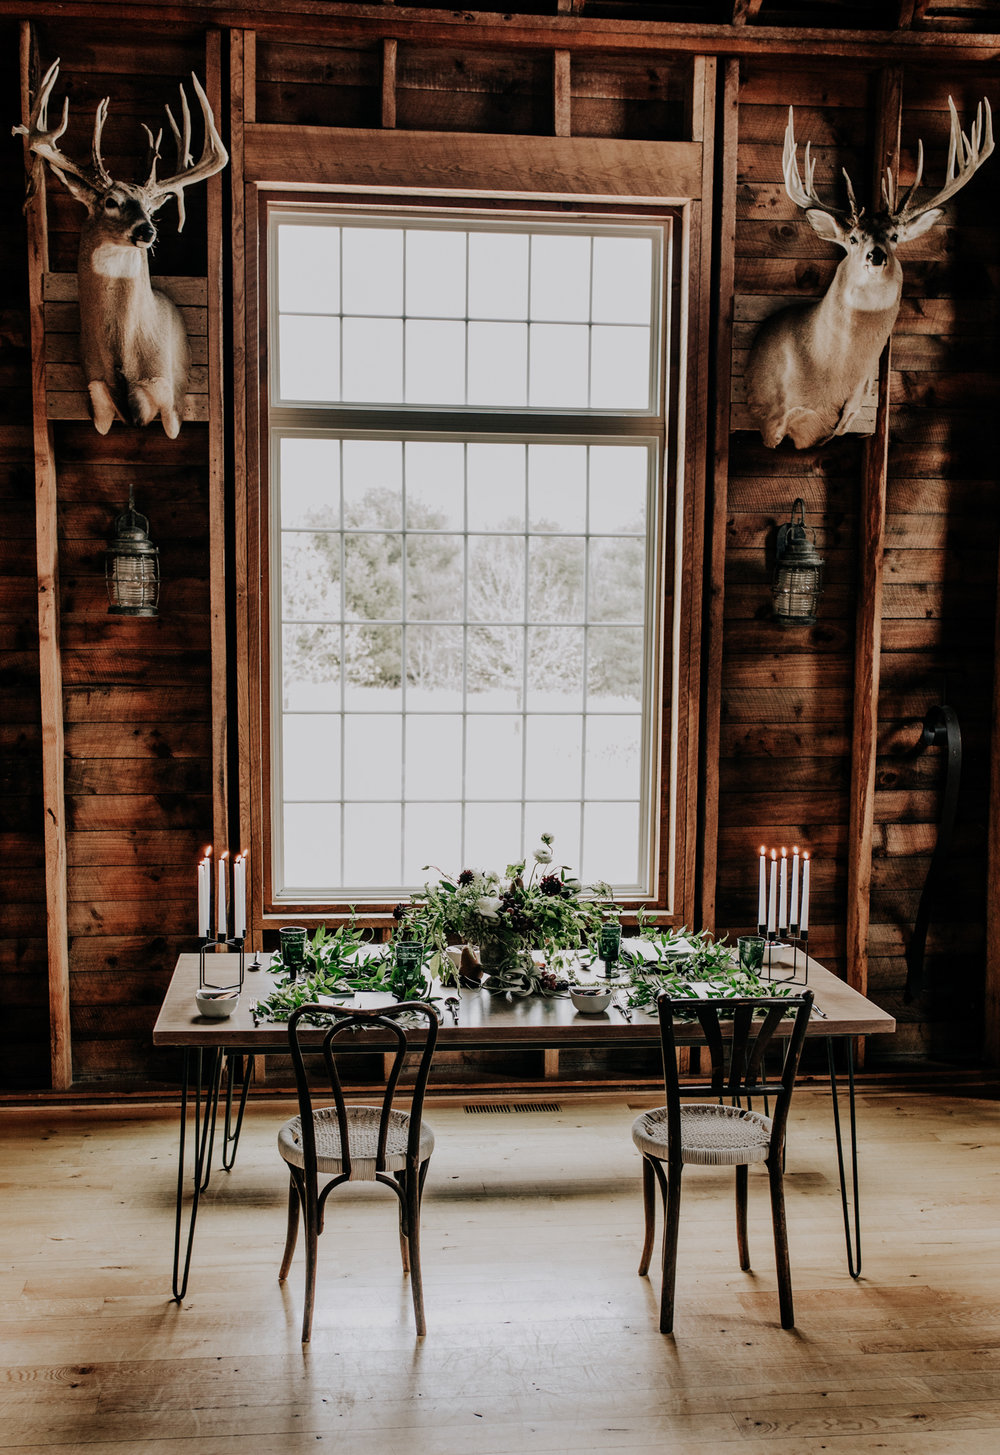 Rad Photographers - Rustic Wedding Decor - Cabin Elopement - Hove Photography - Magnolia Market Placesettings